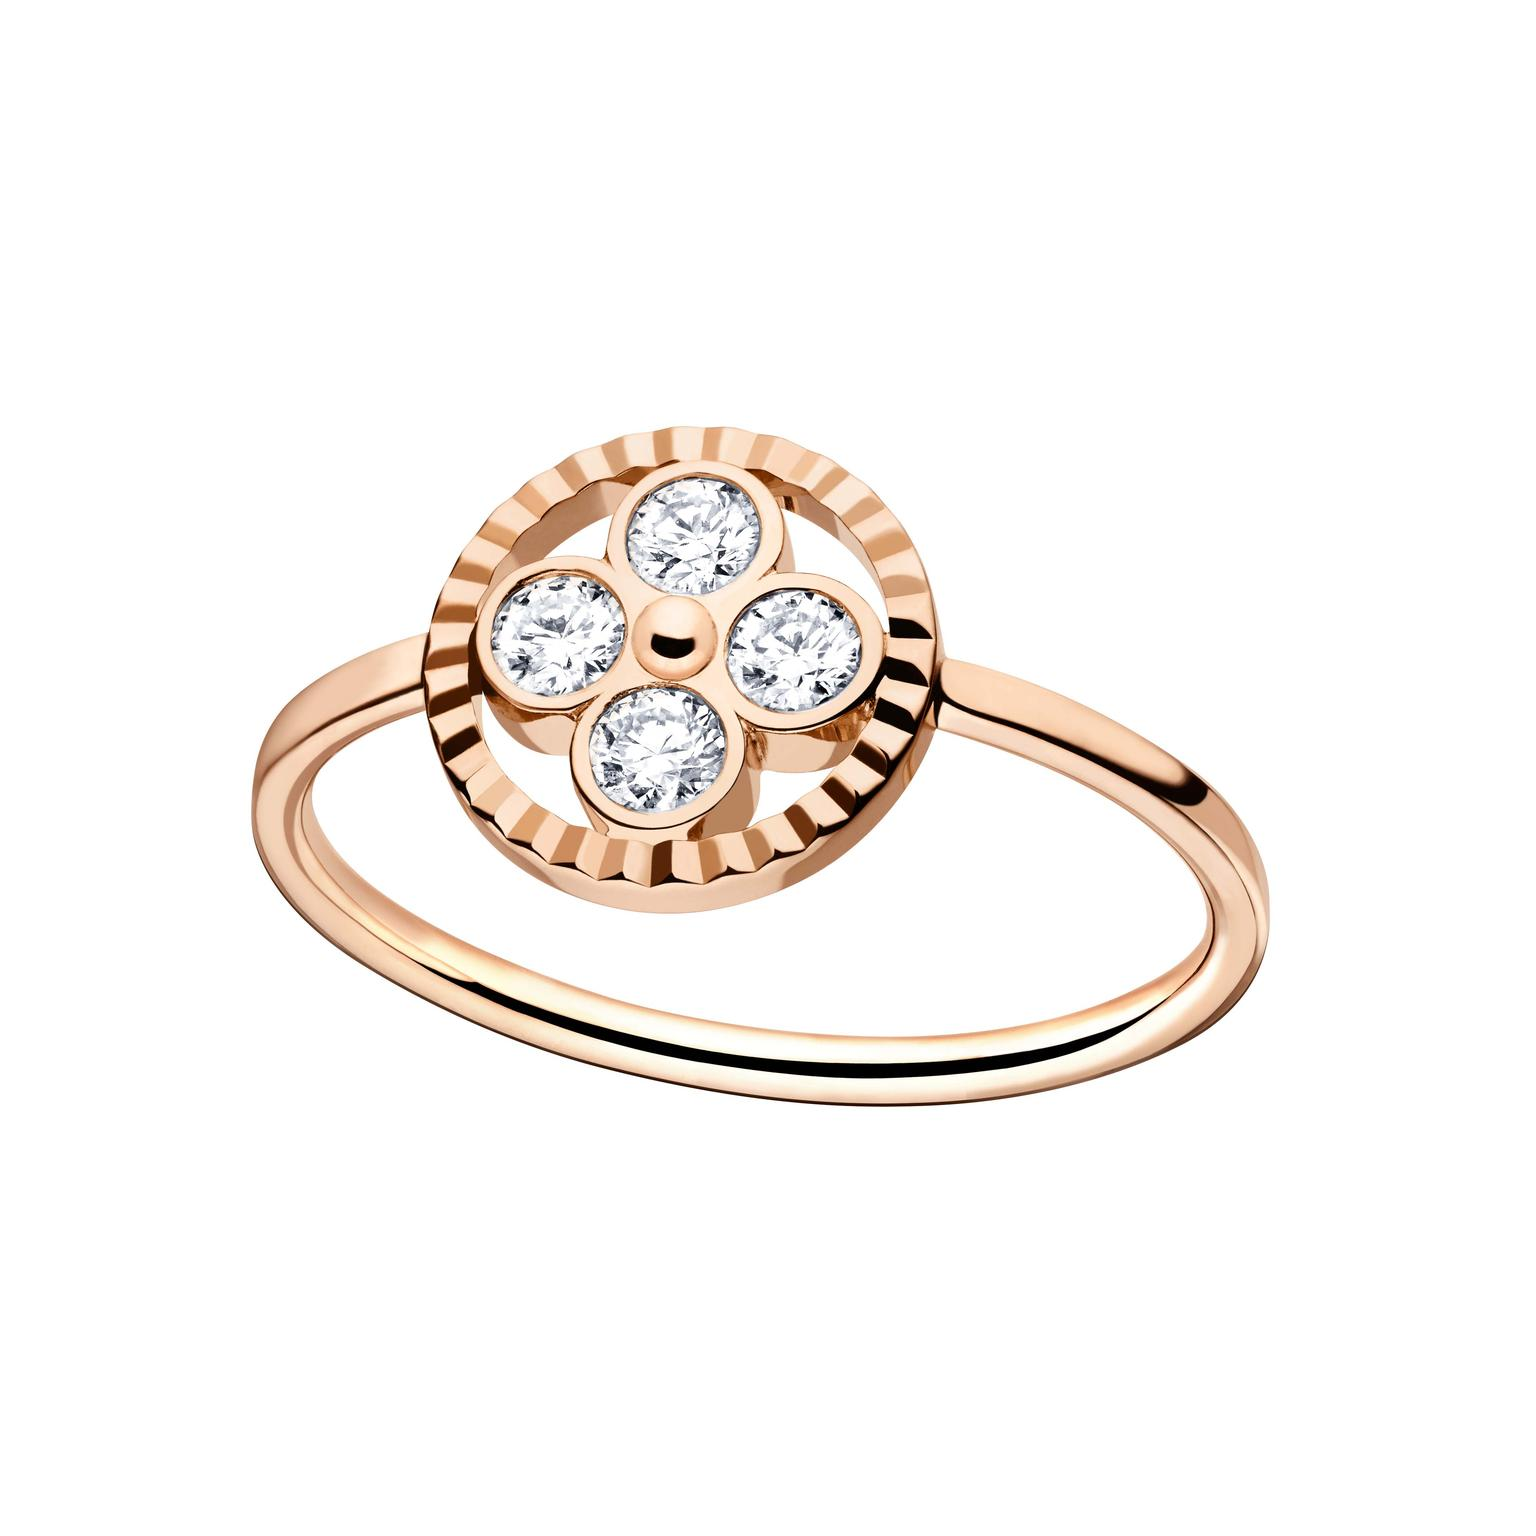 Louis Vuitton Monogram Sun ring in rose gold and diamonds.